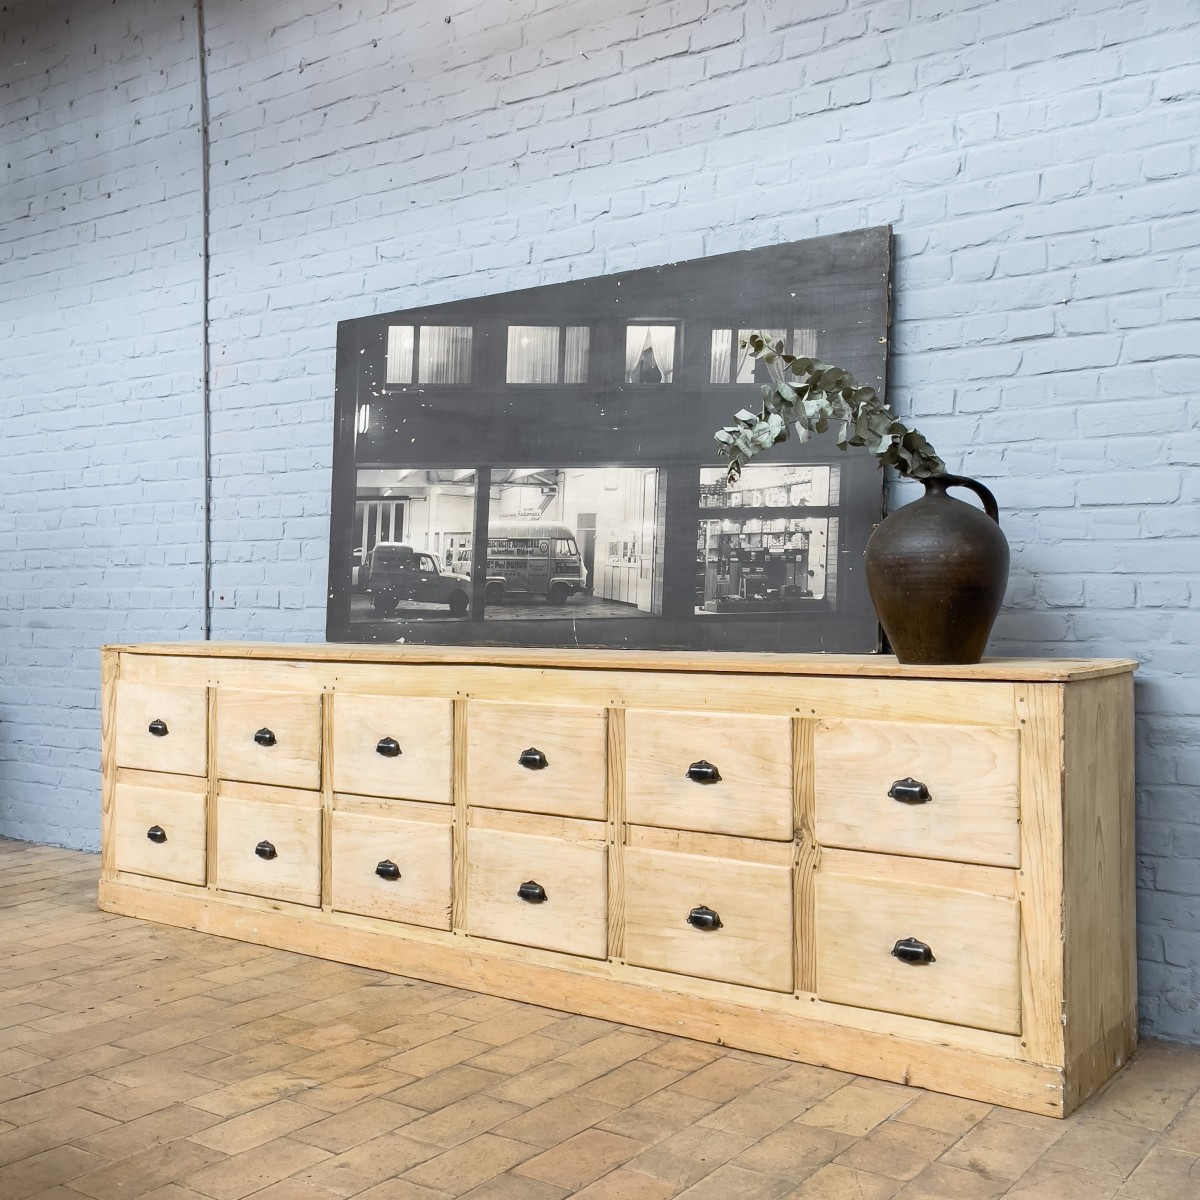 Large cabinet with drawers